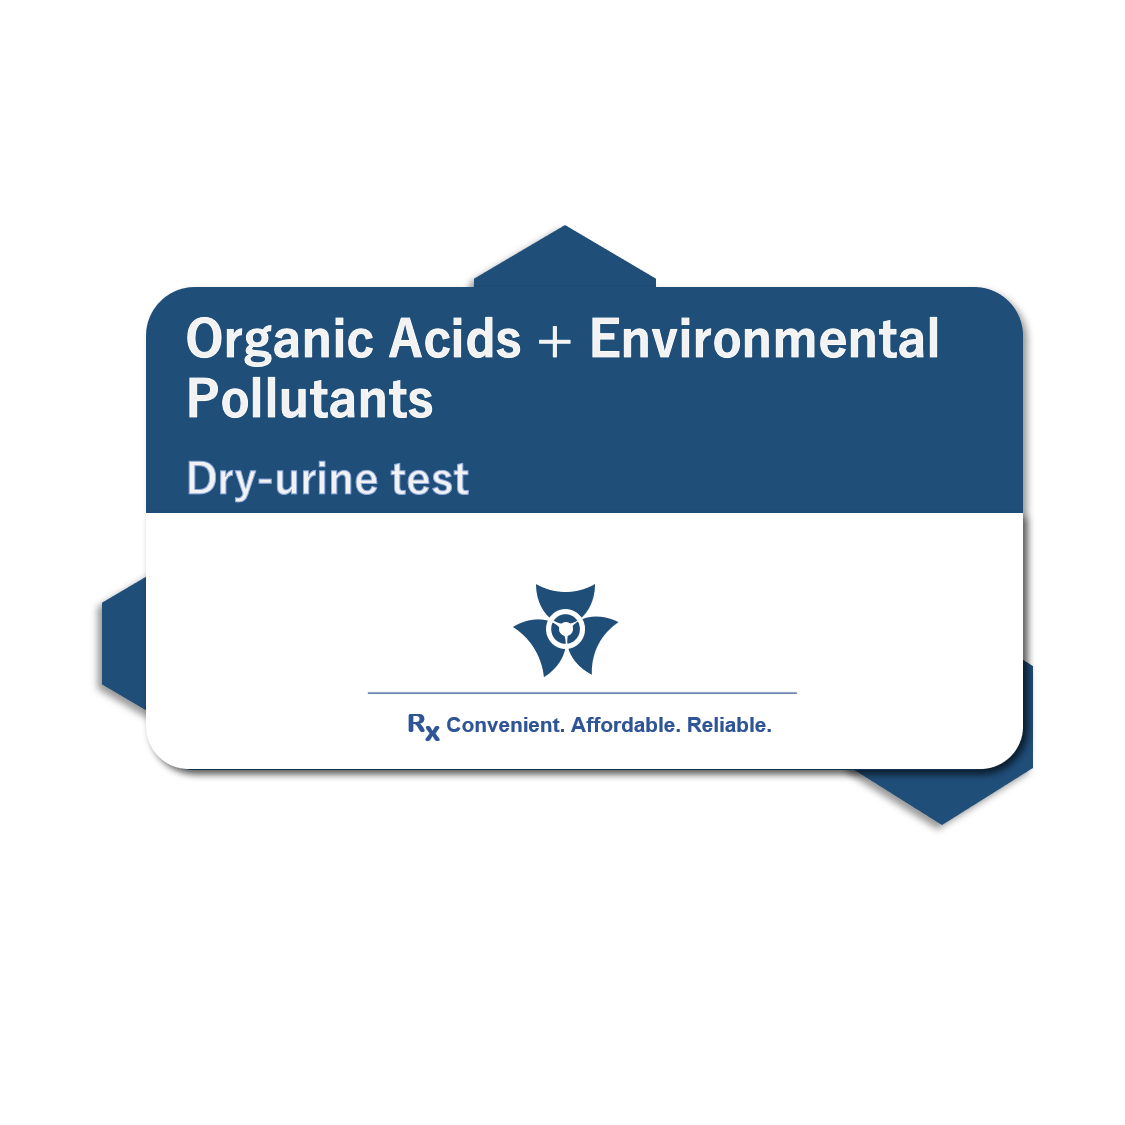 Organic Acids + Environmental Pollutants Test